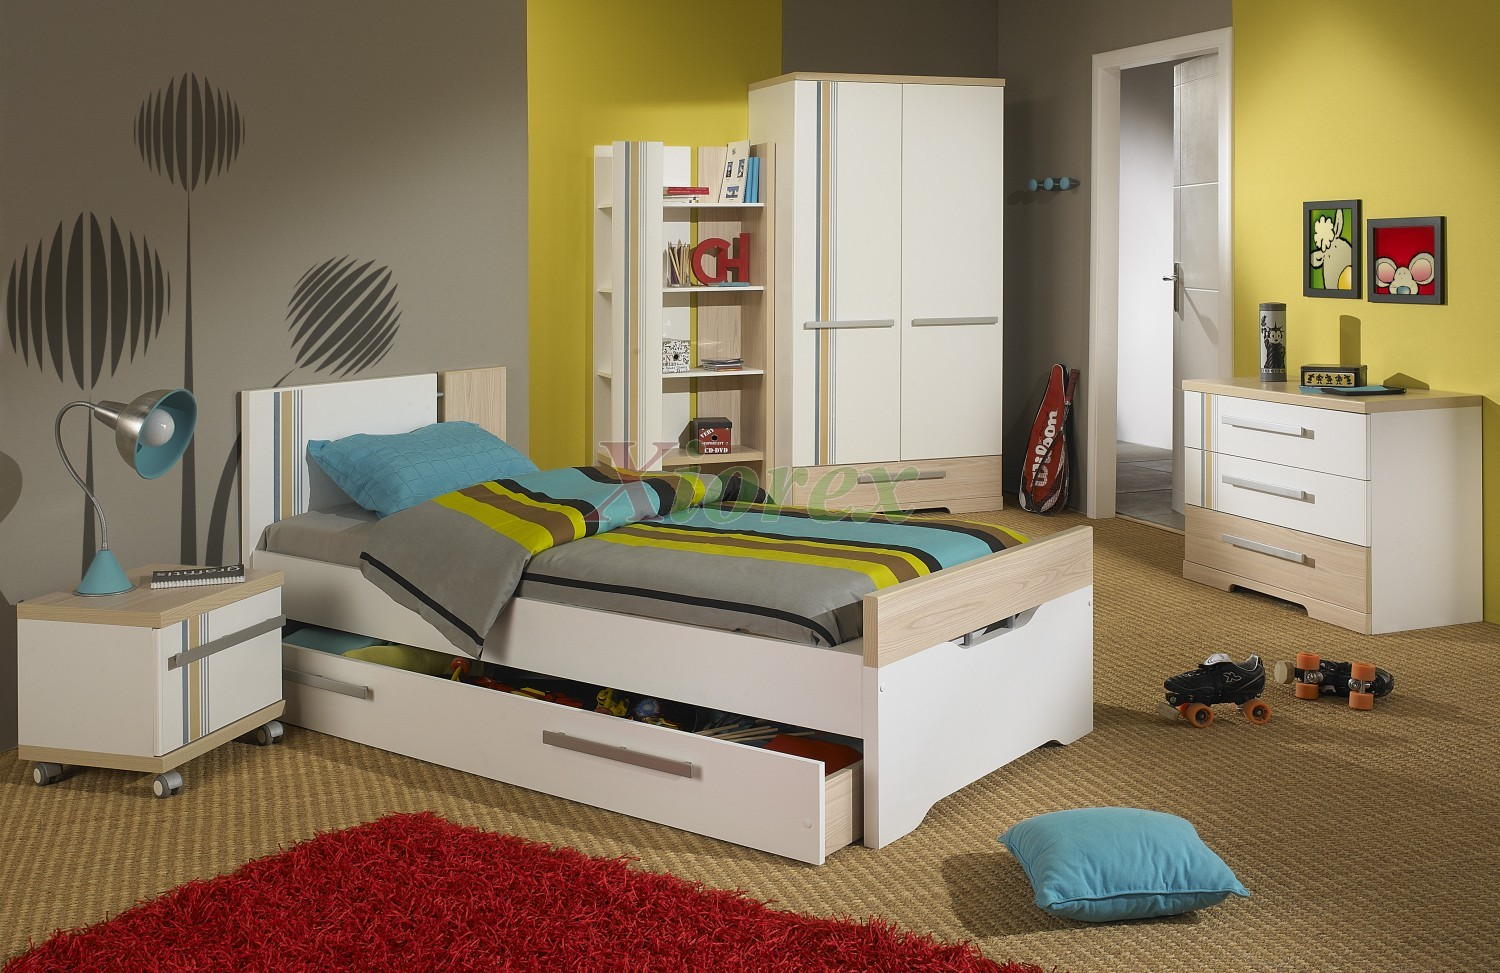 themed bedroom furniture for kids photo - 6